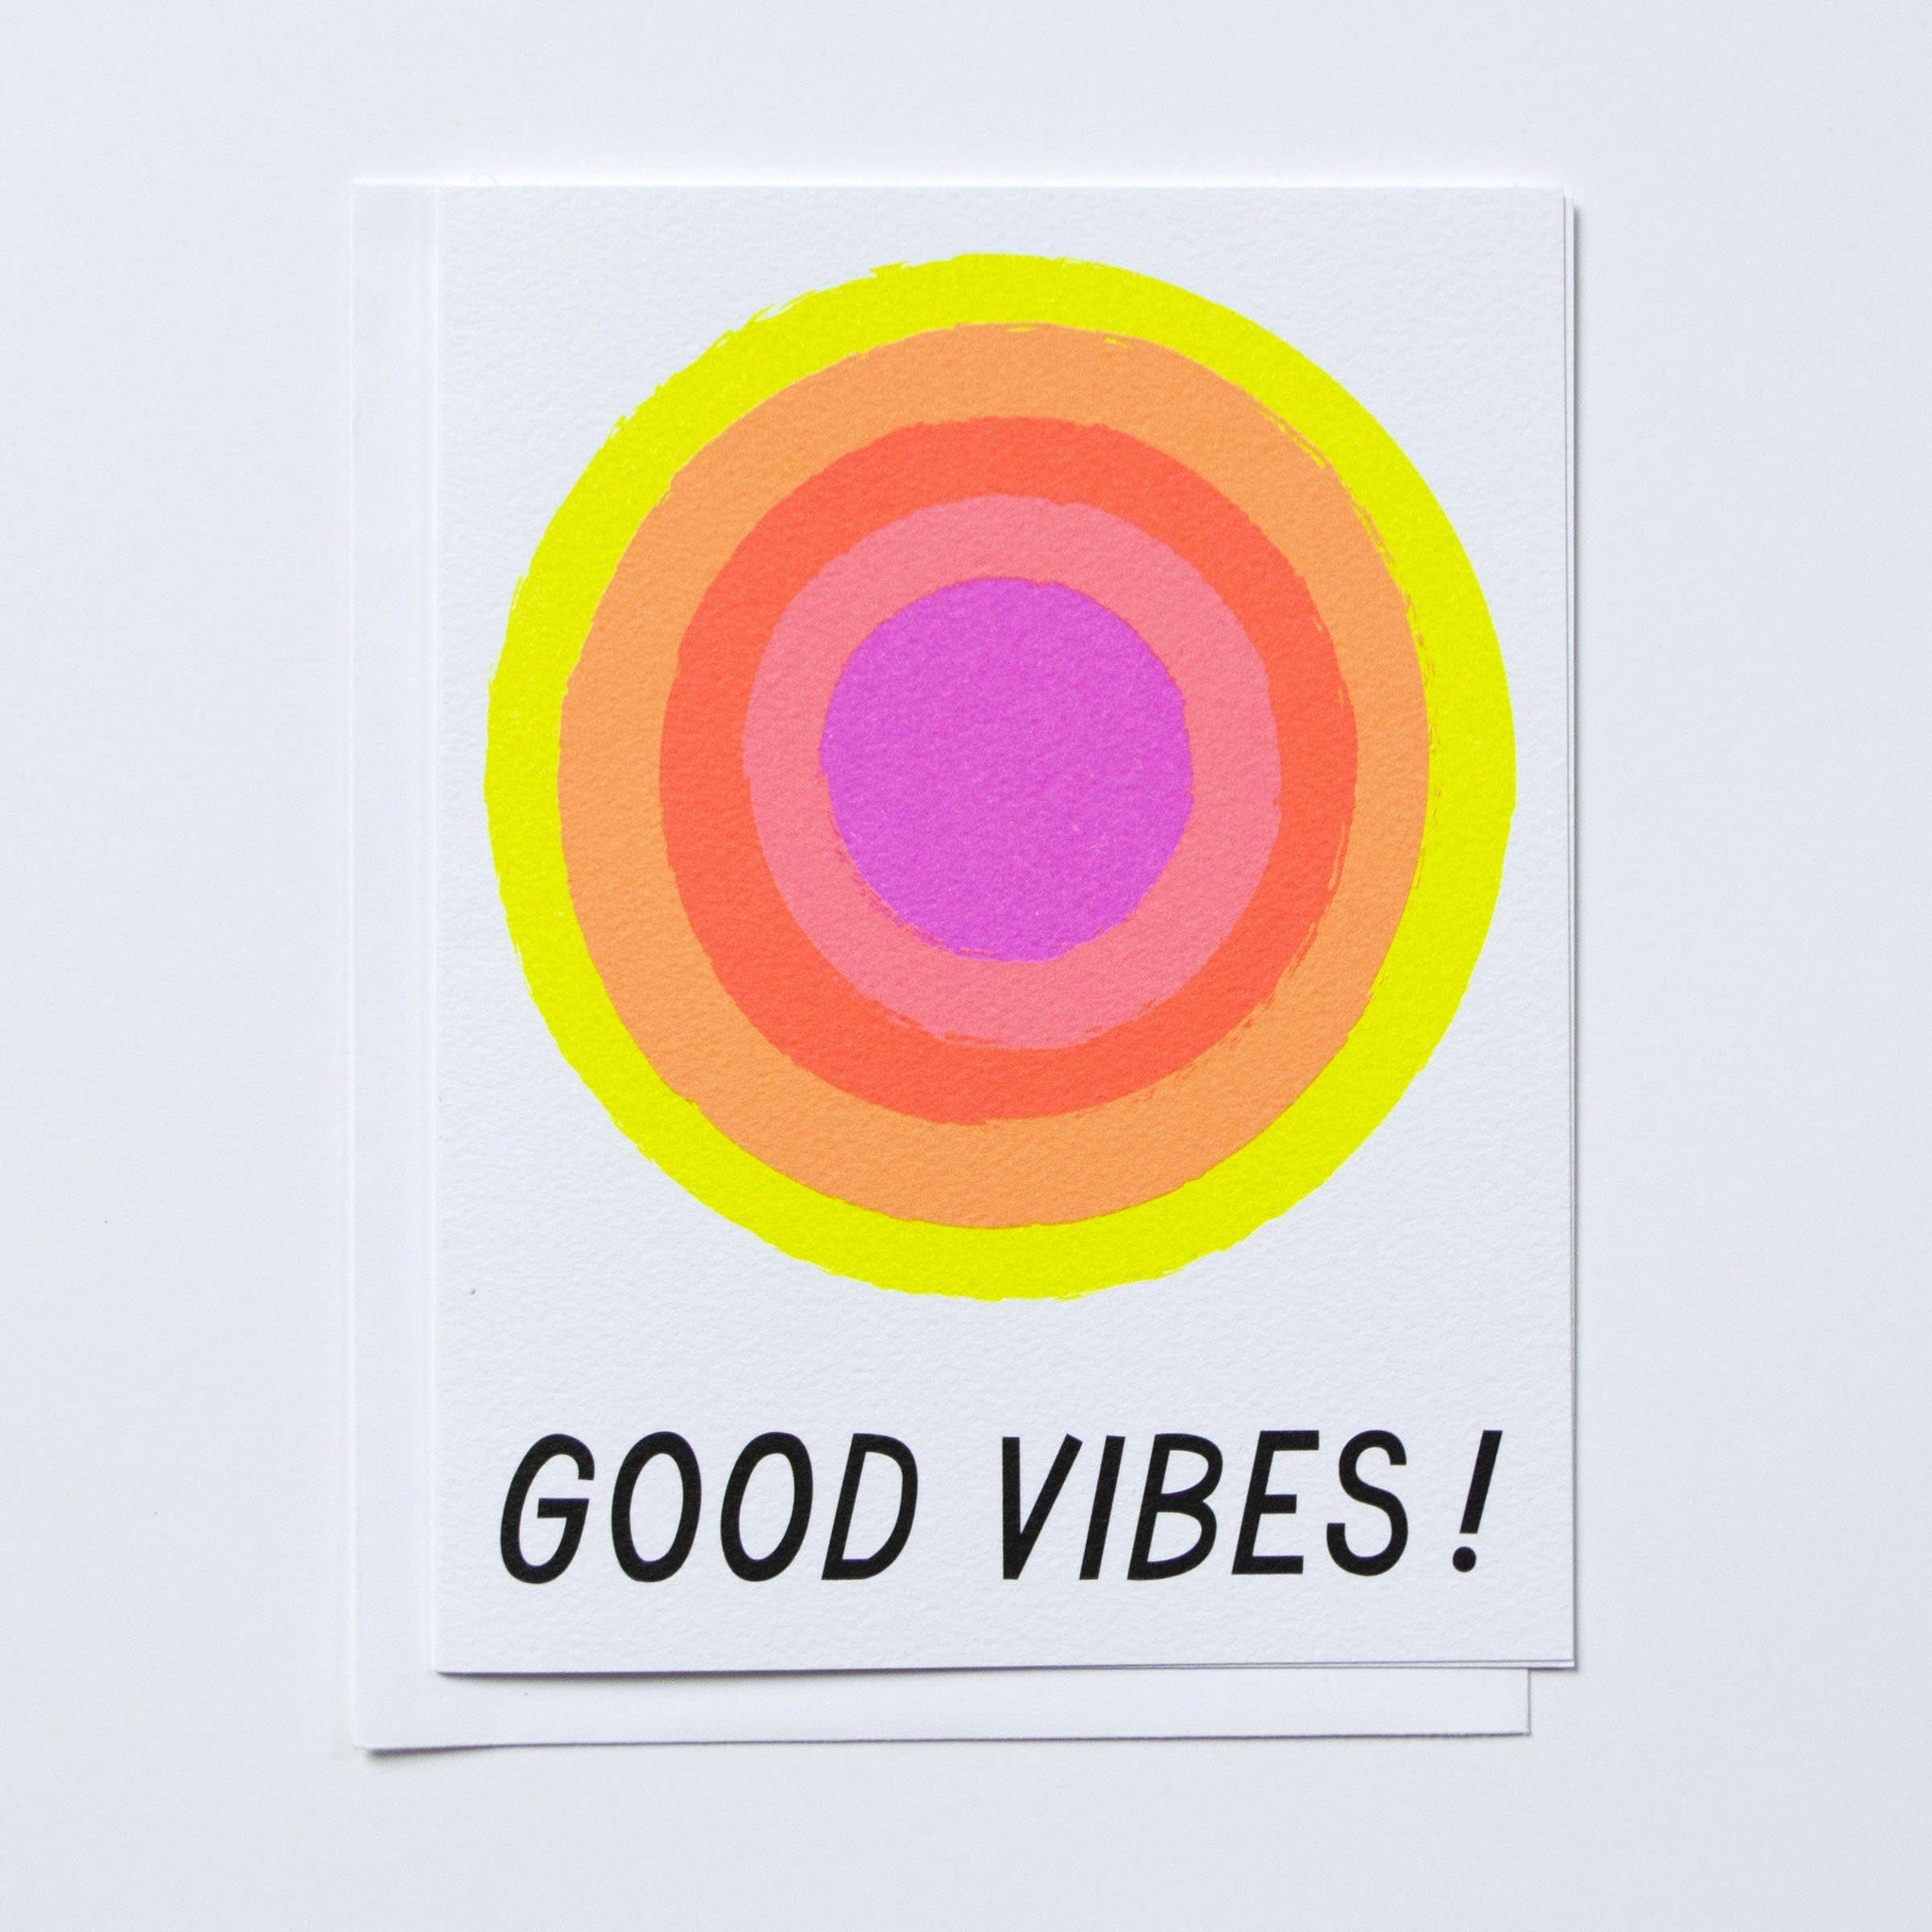 Good Vibes Glowing Neon Sunshine Note Card